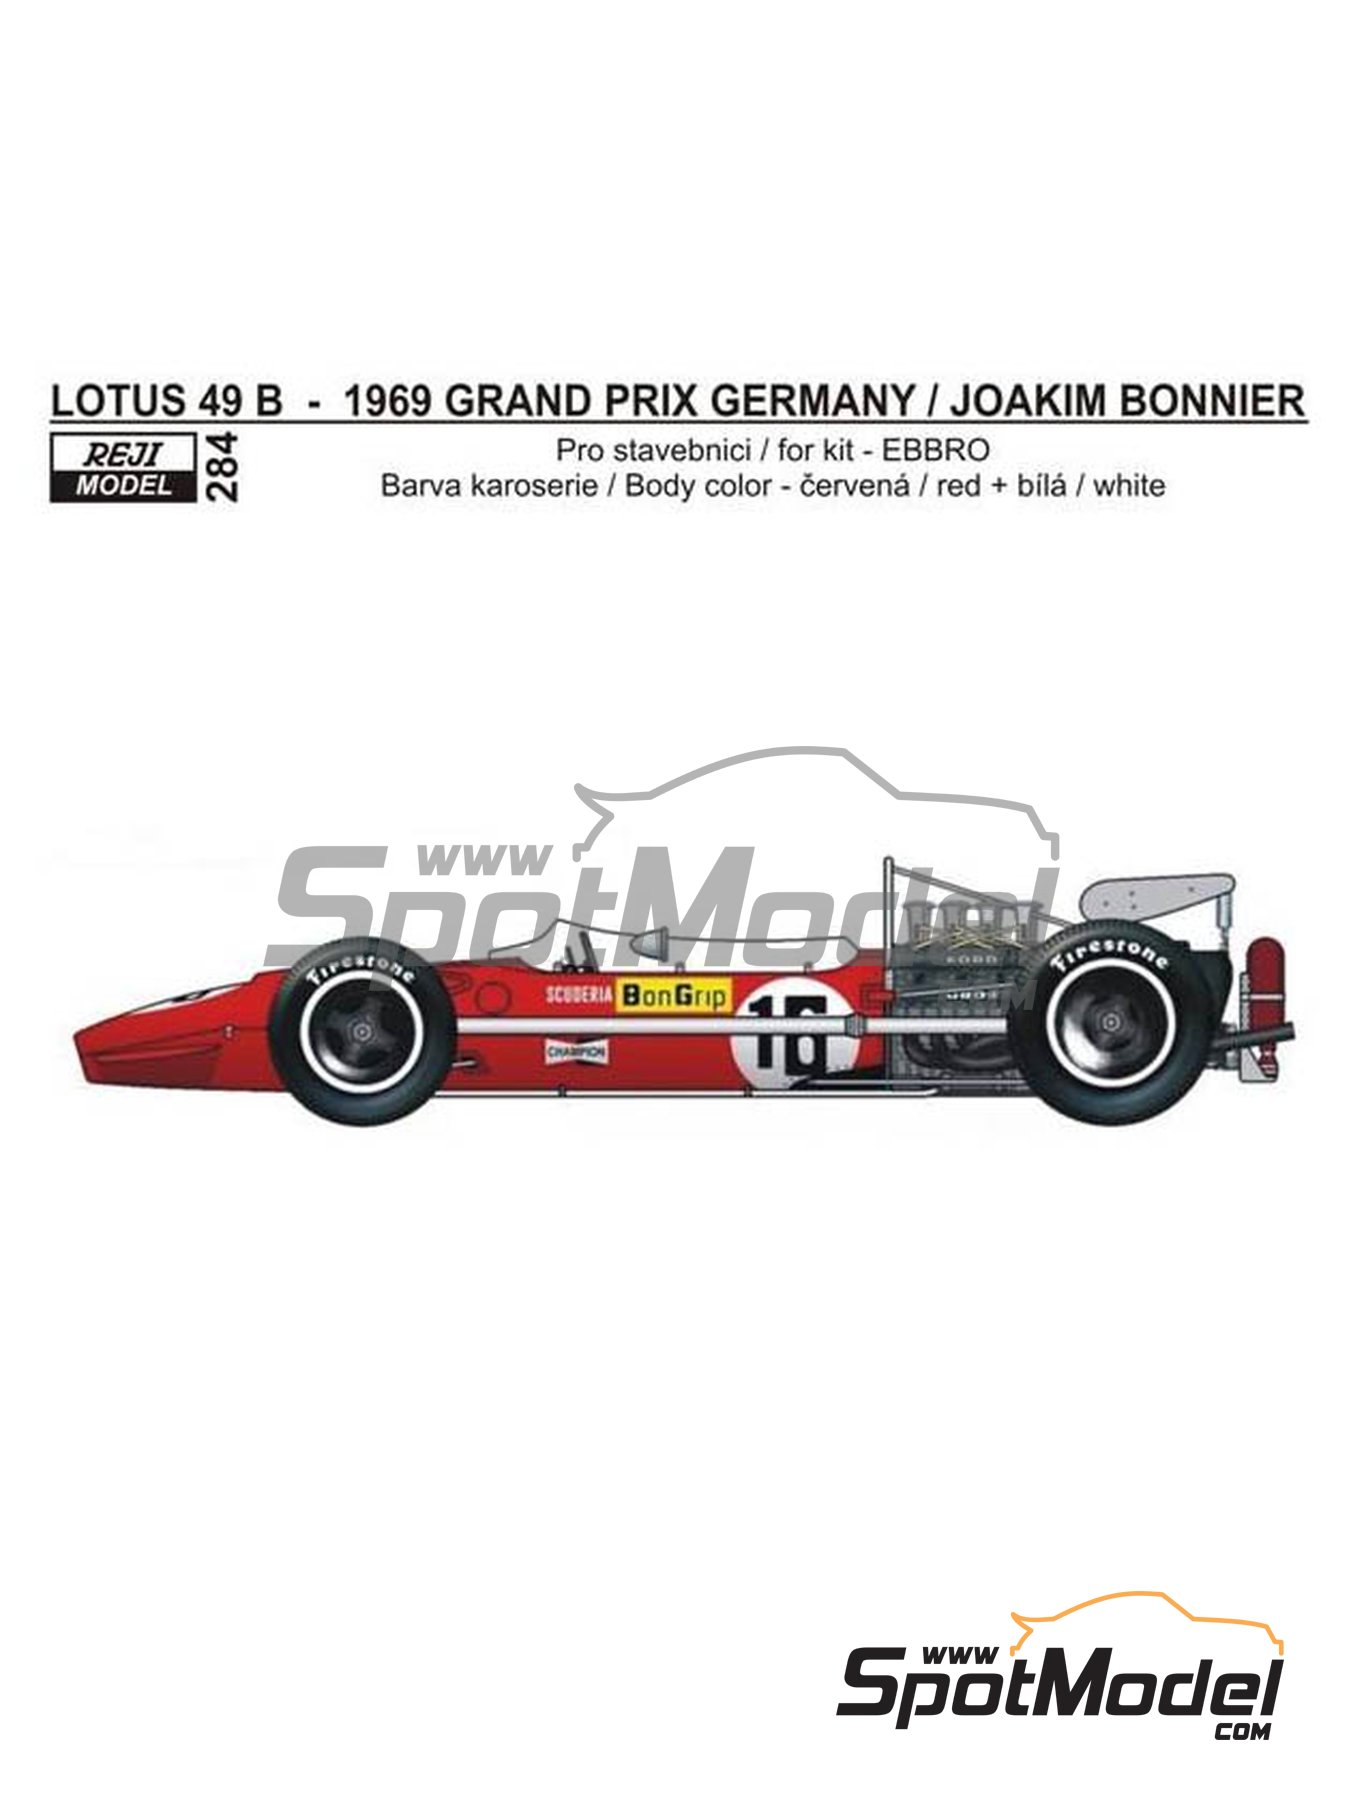 Lotus Ford Type 49B Scuderia BonGrip - German Grand Prix 1969 | Marking / livery in 1/20 scale manufactured by Reji Model (ref. REJI-284) image